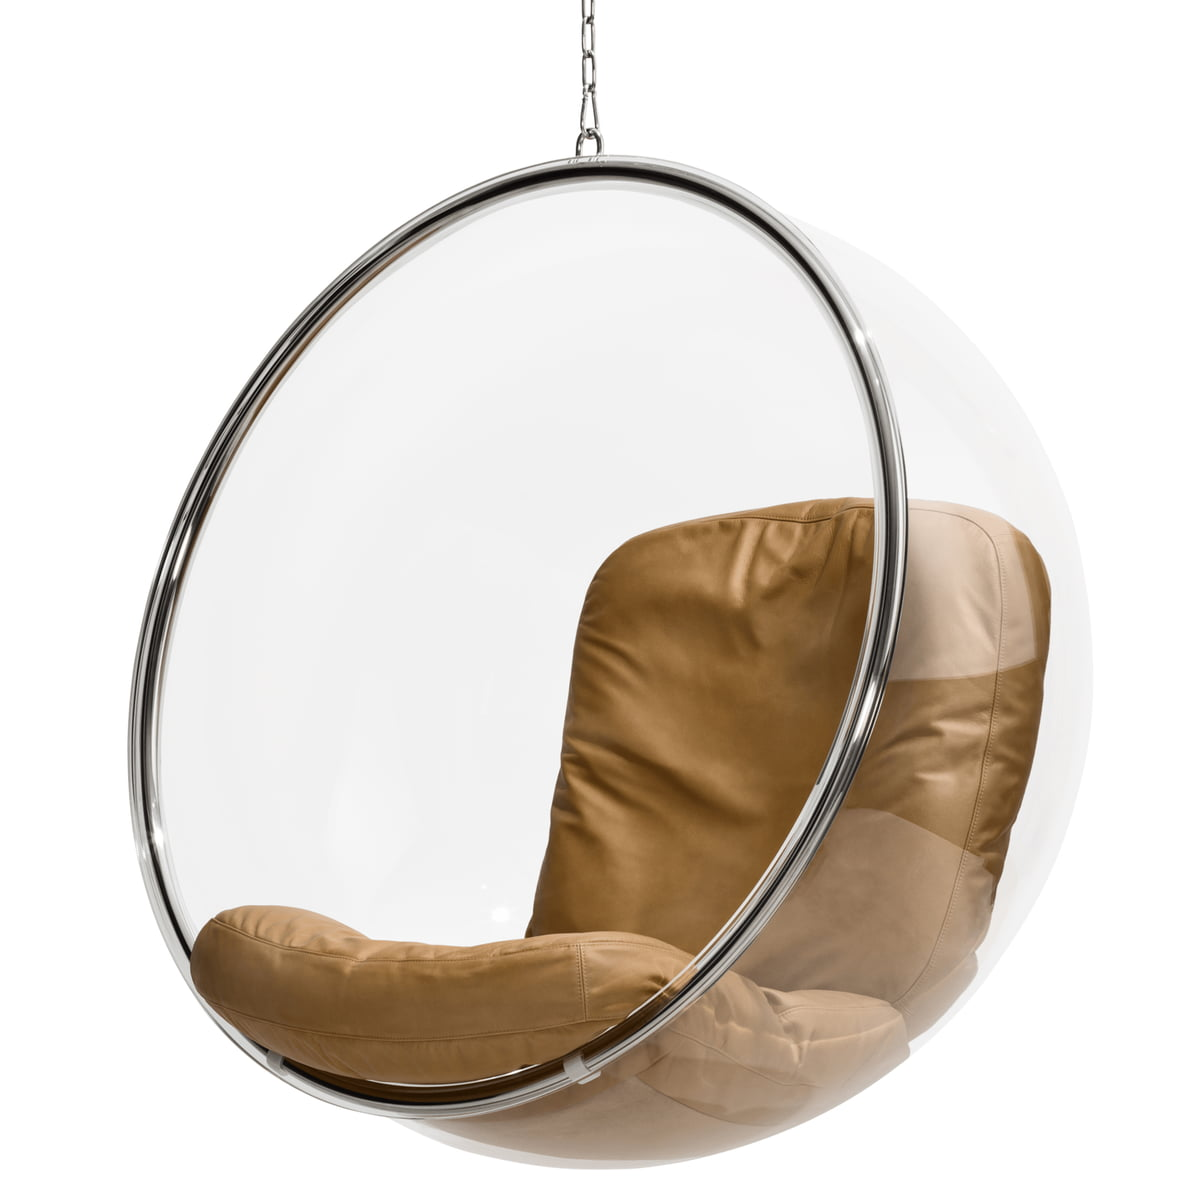 Bubble chair eero aarnio - Eero Aarnio Originals Bubble Chair Natural